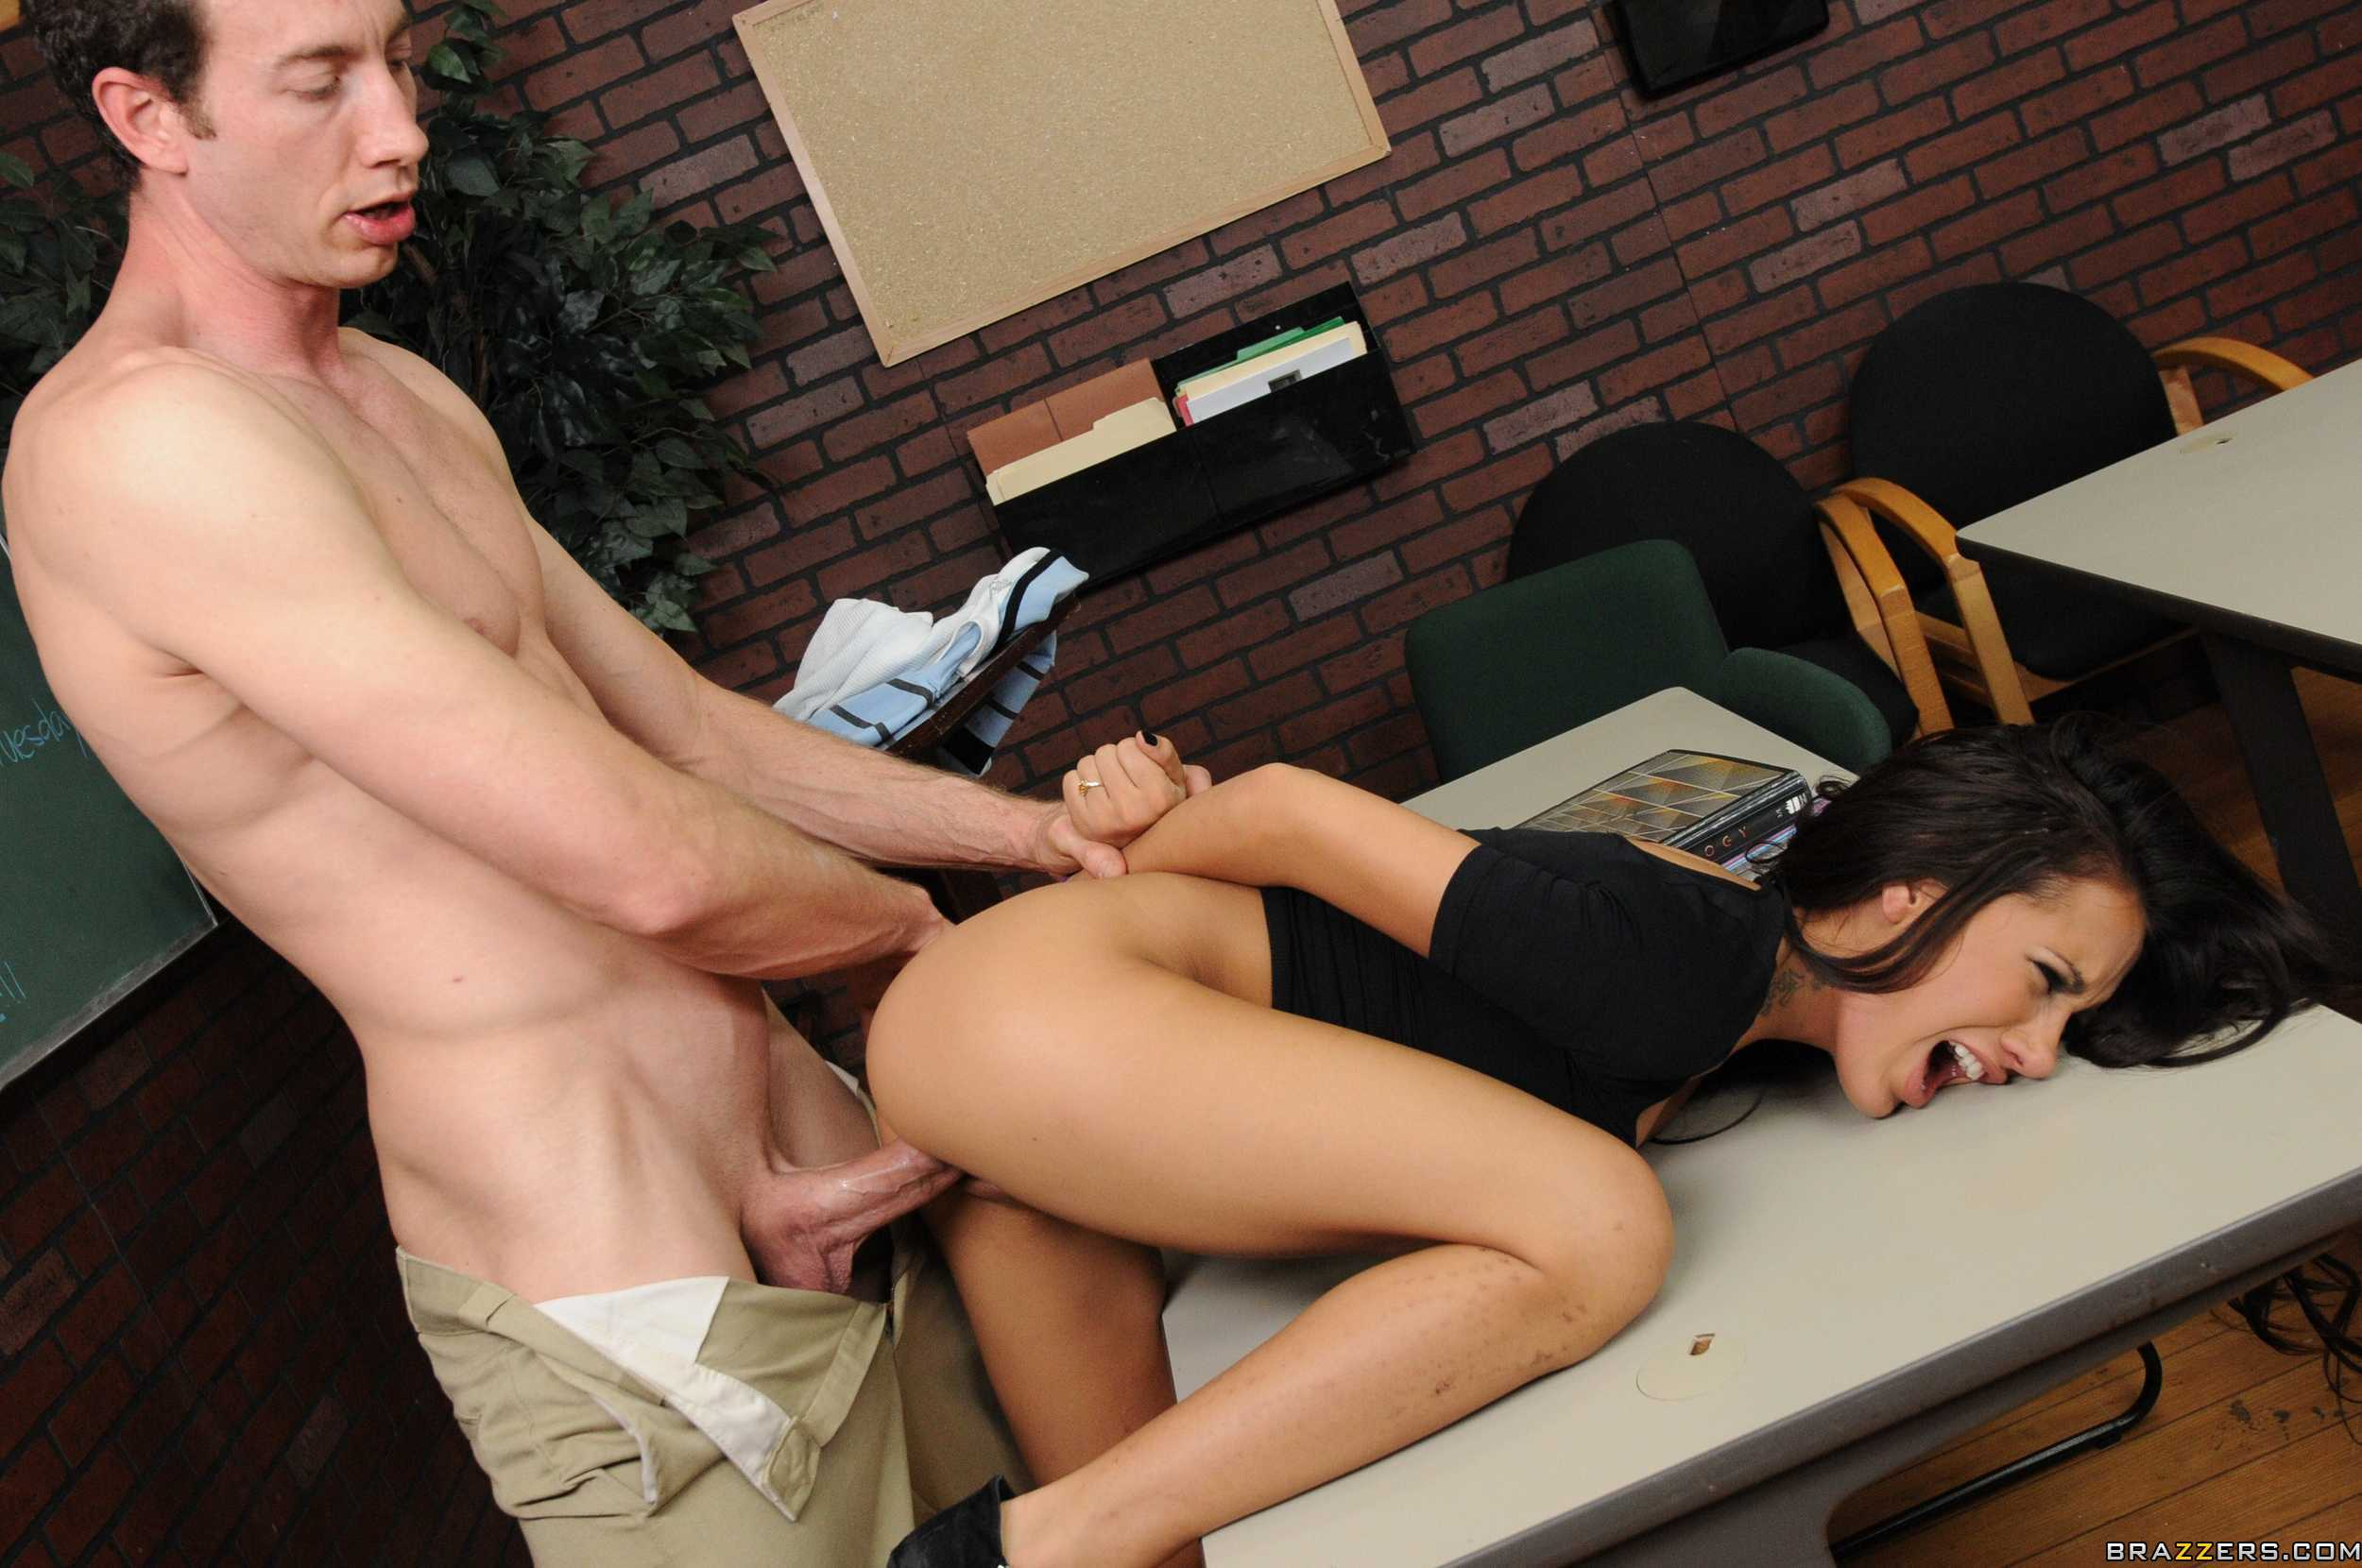 Fucked on her desk